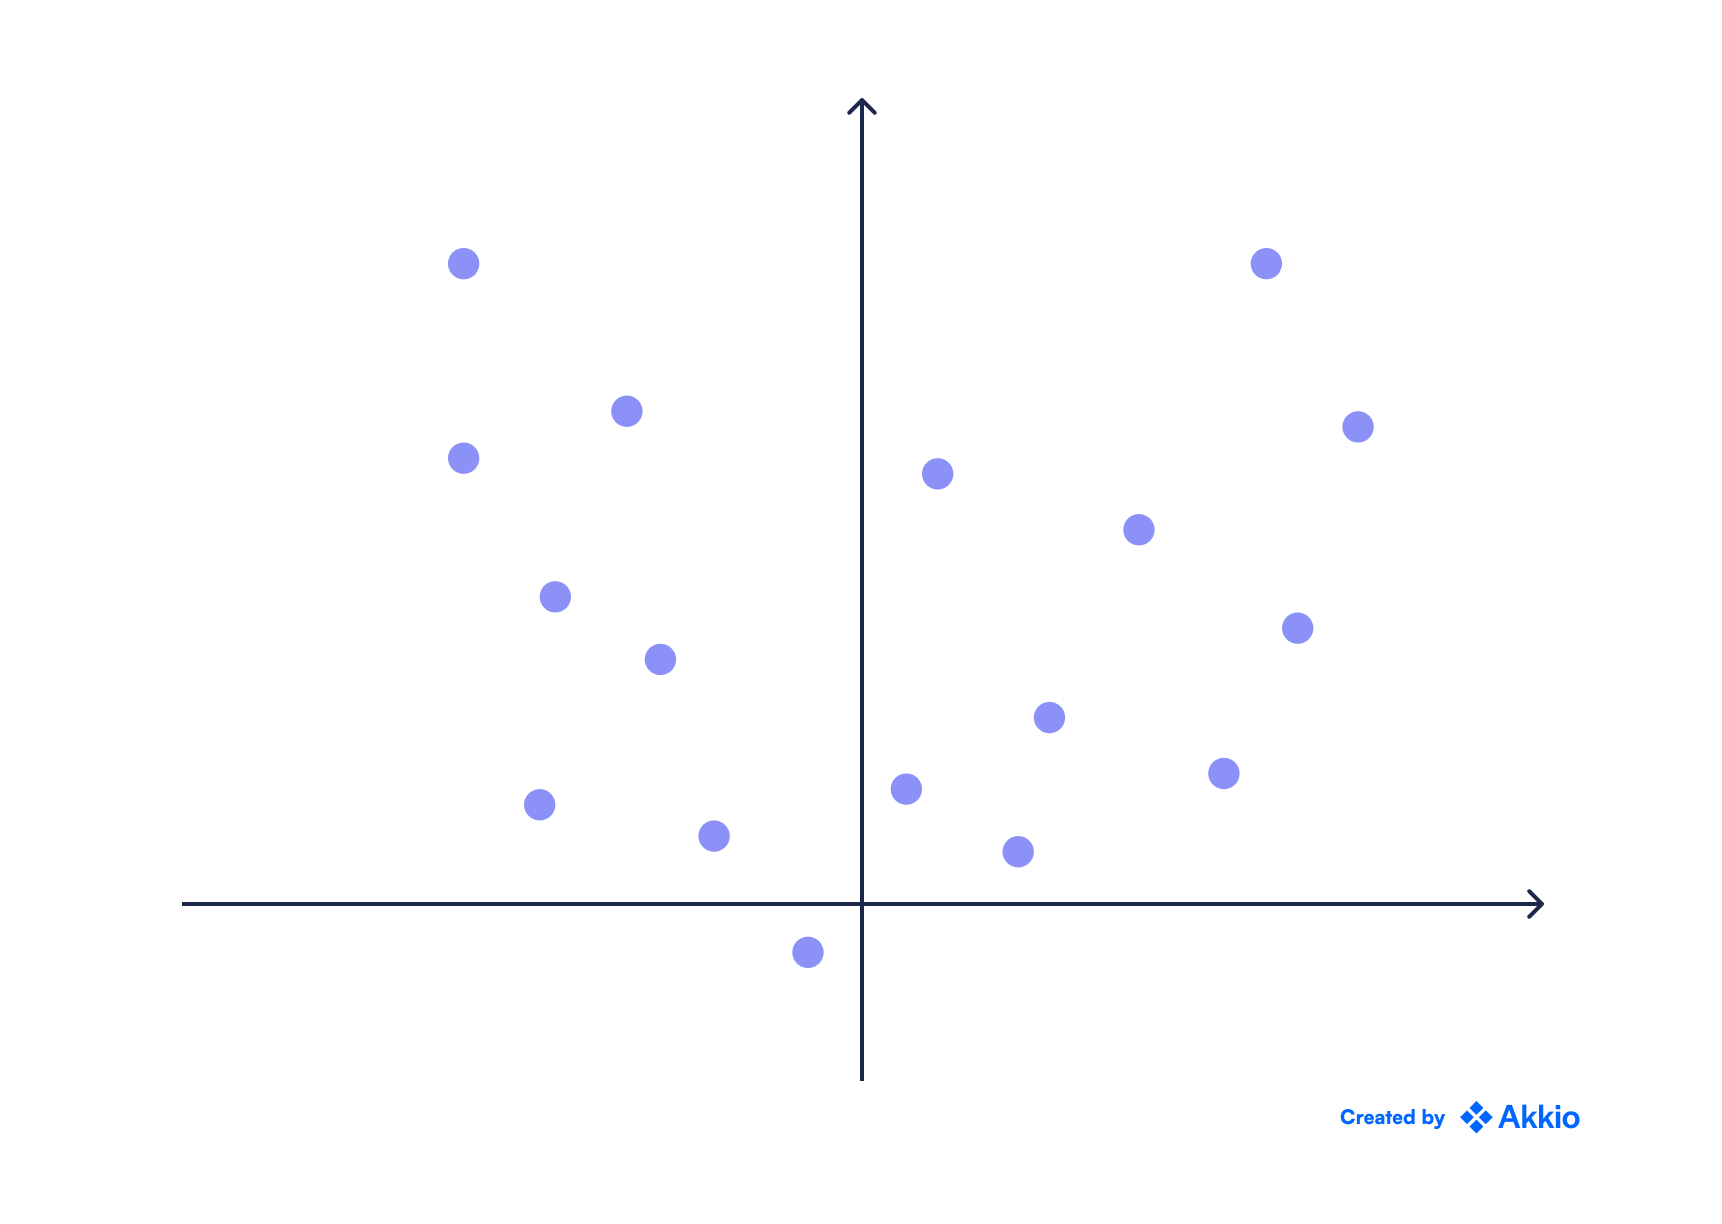 A scatter plot with data points organized in a quadratic upward facing U shape.